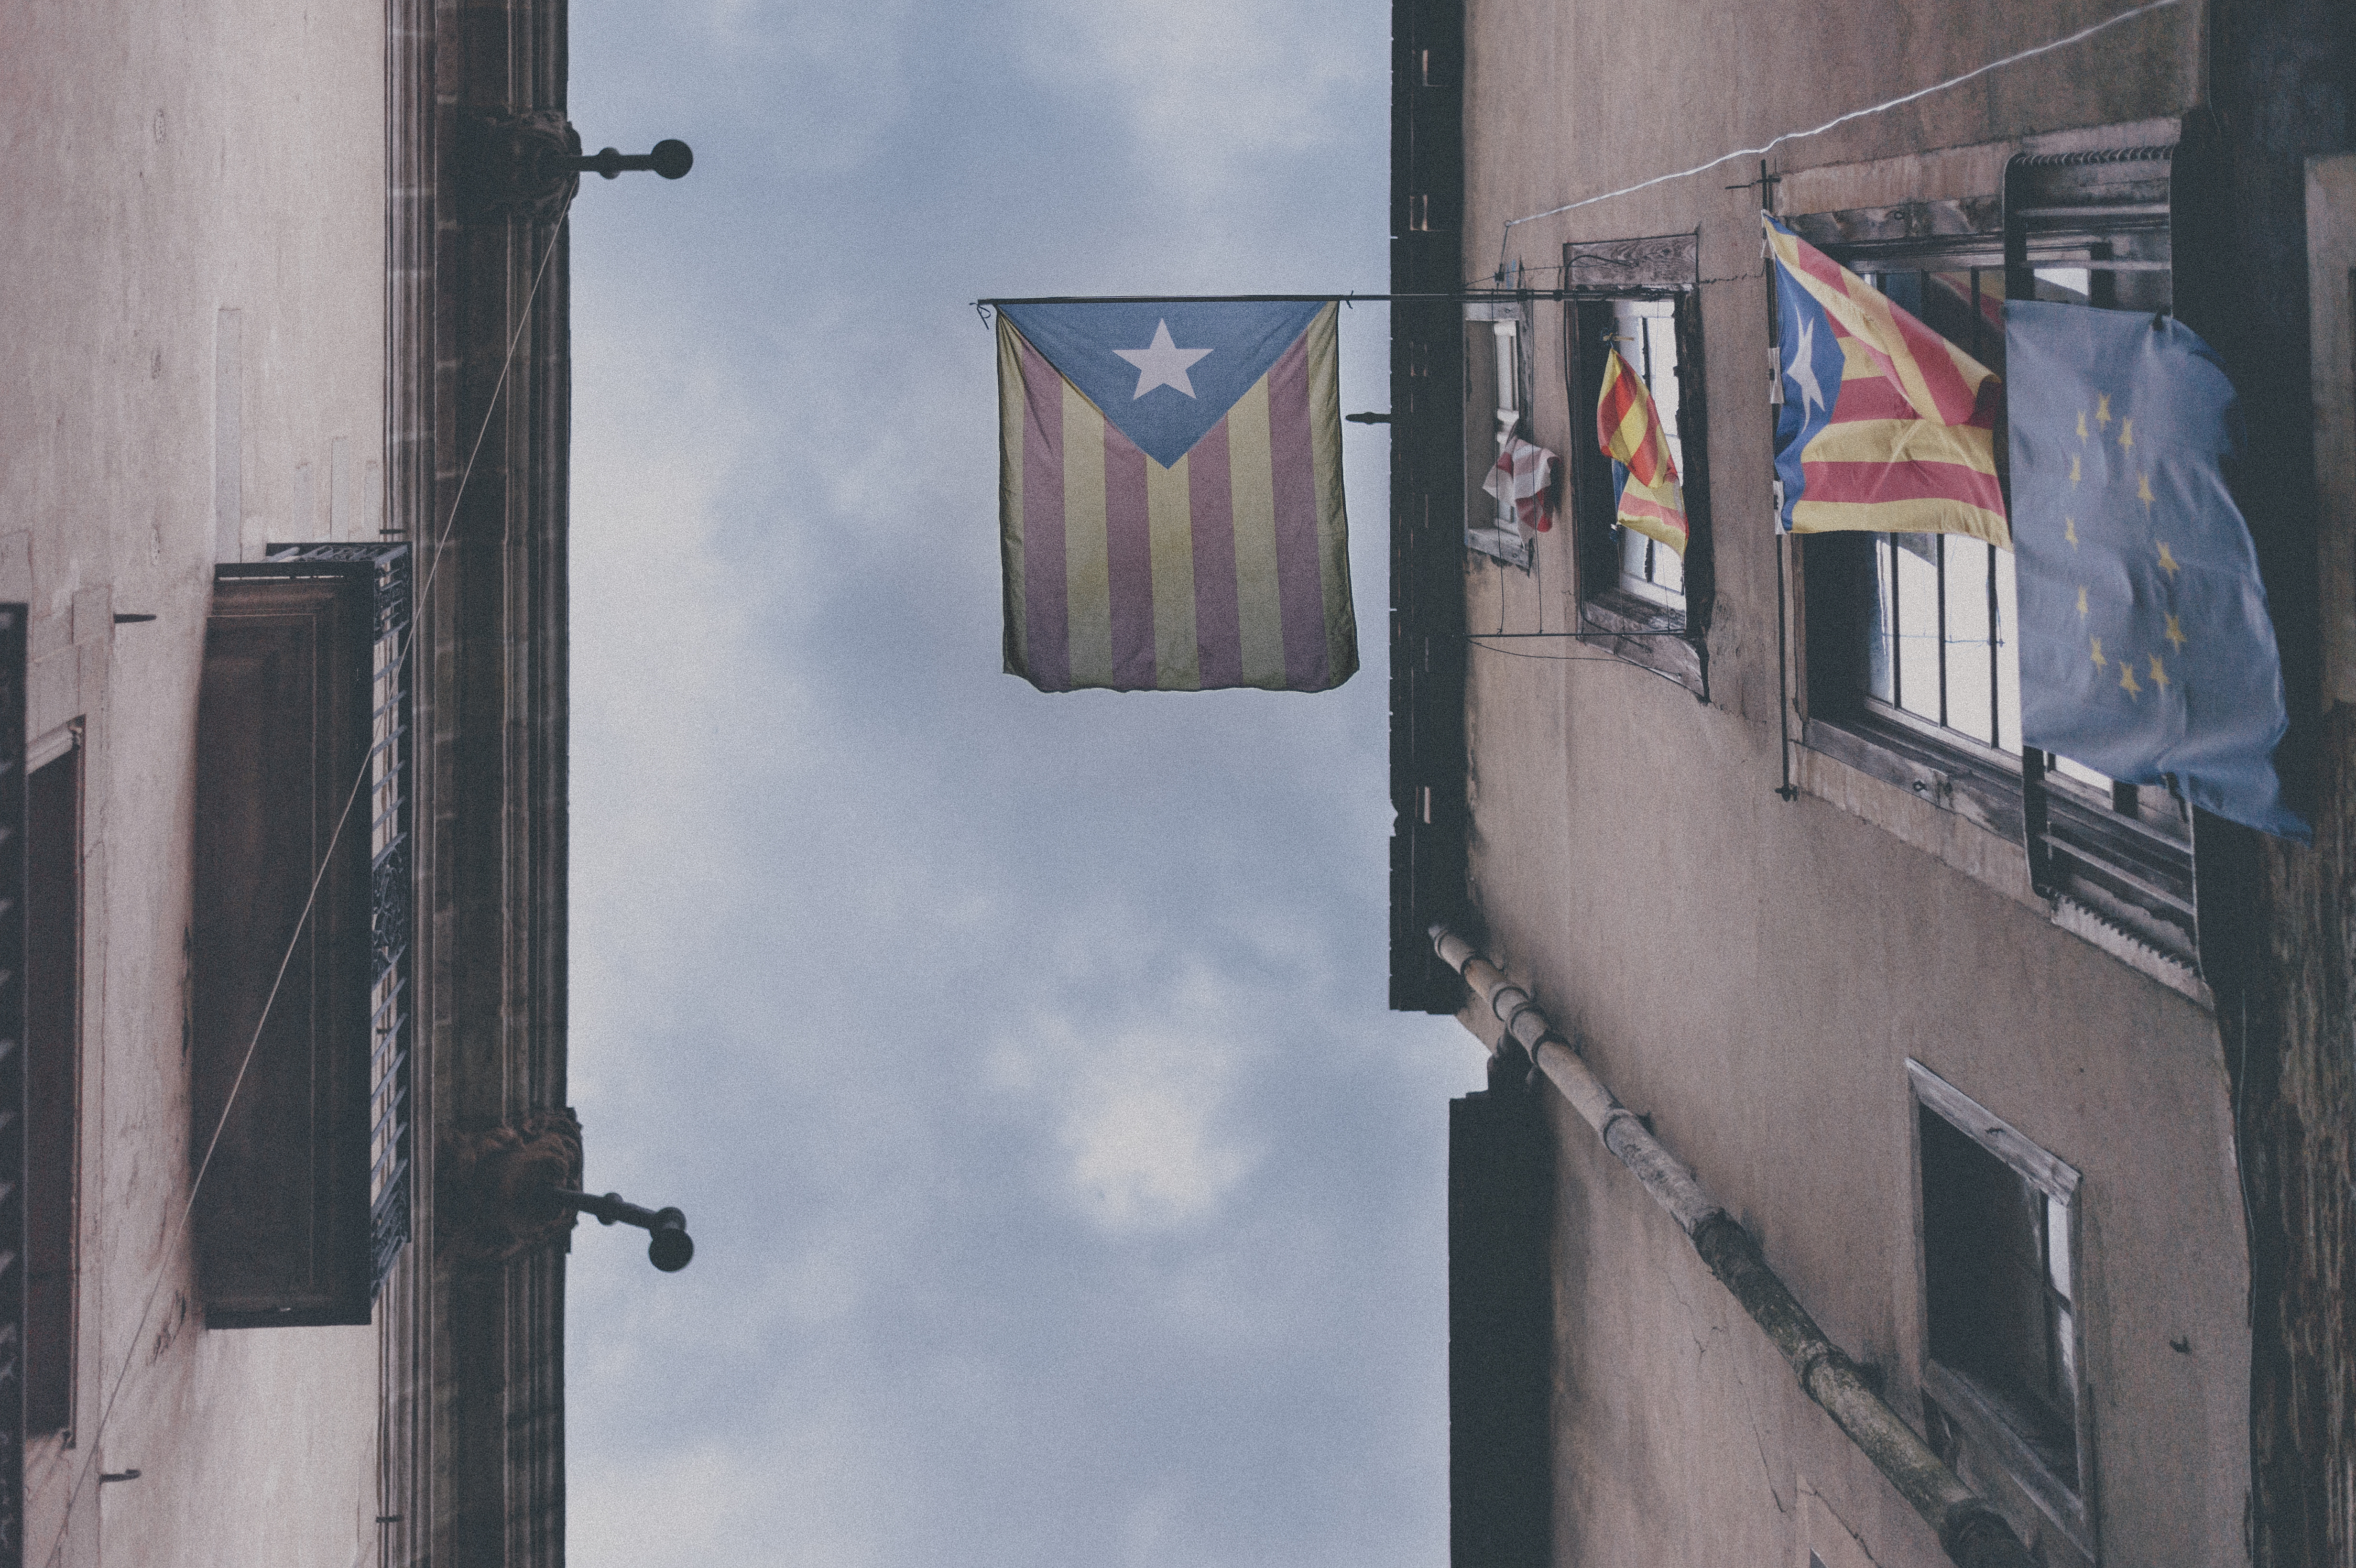 Flags of Catalonia and the European Union on the street of Barcelona.